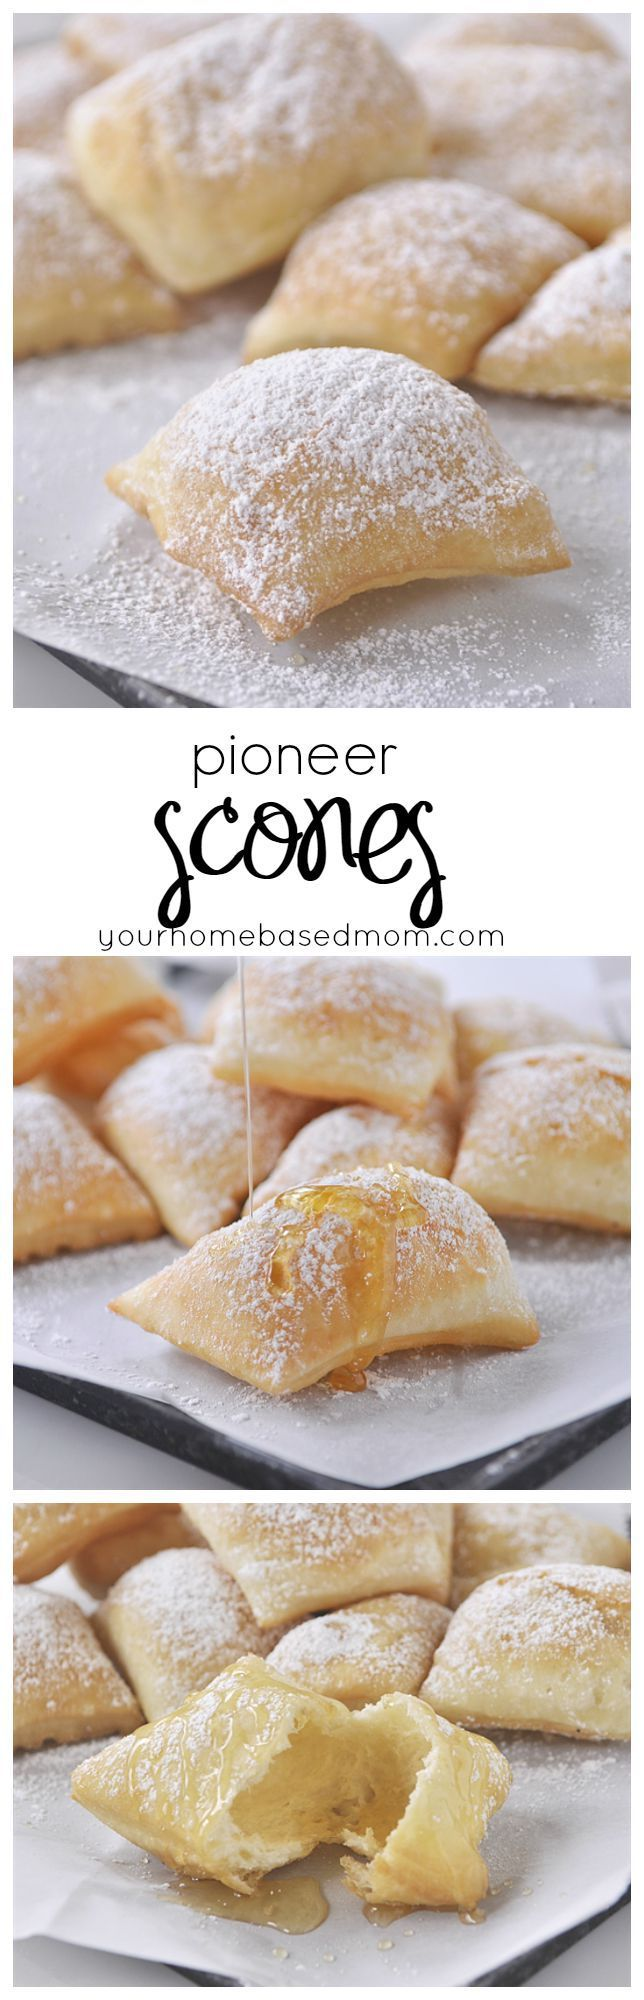 Pioneer Scones Recipe - these are so yummy!